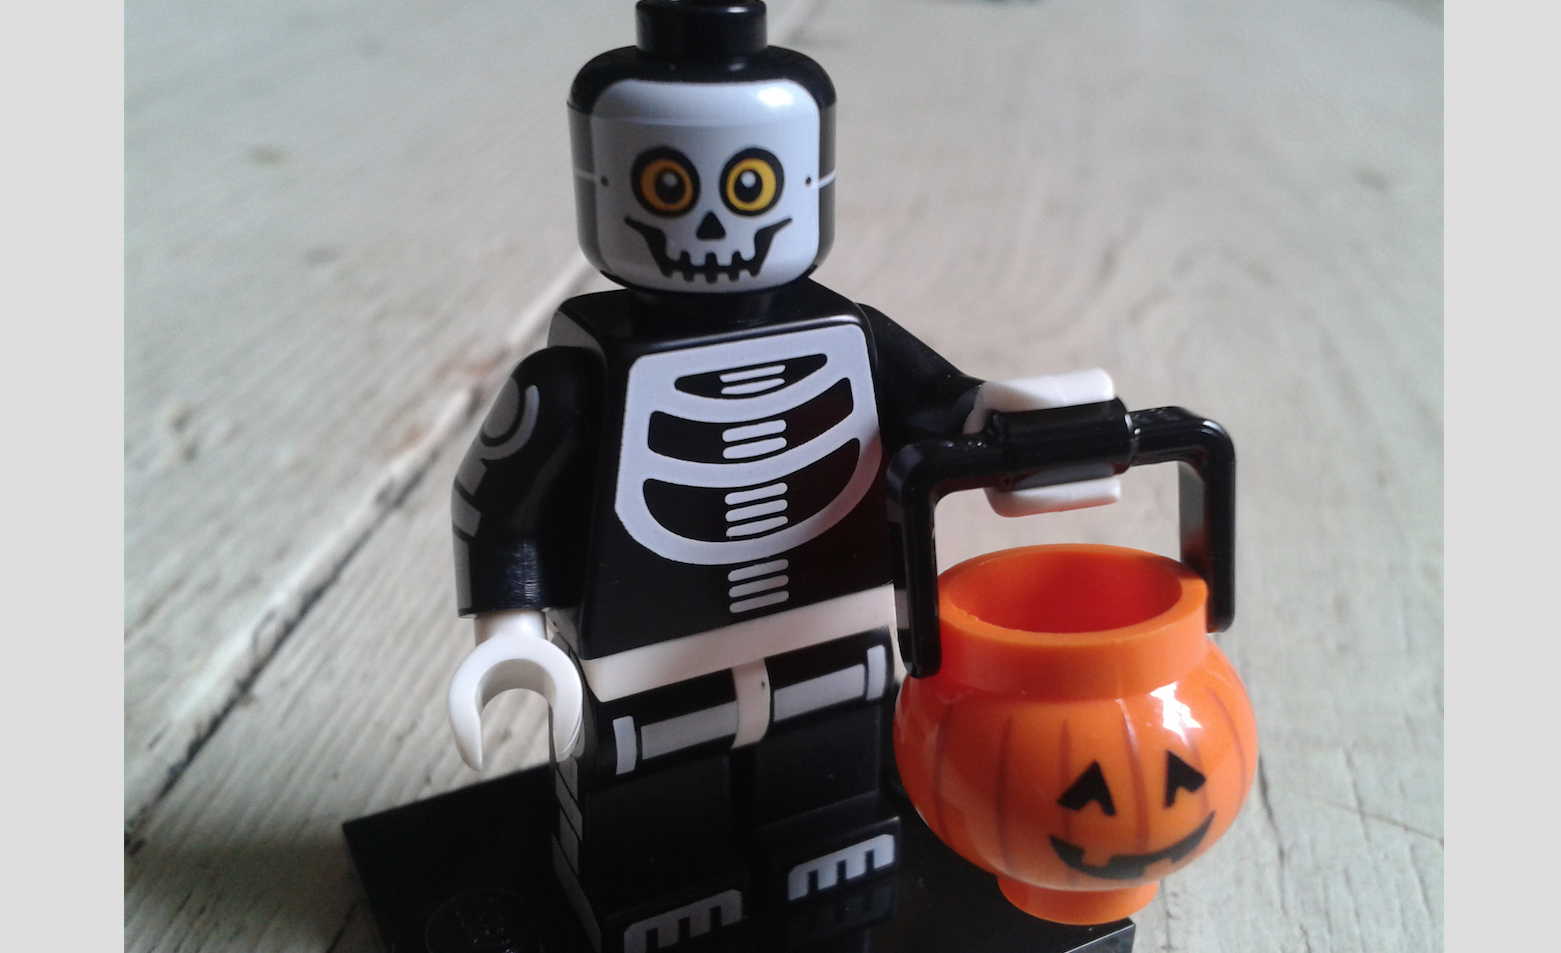 Lego Monsters Minifigures Review 2015 : Halloween Love